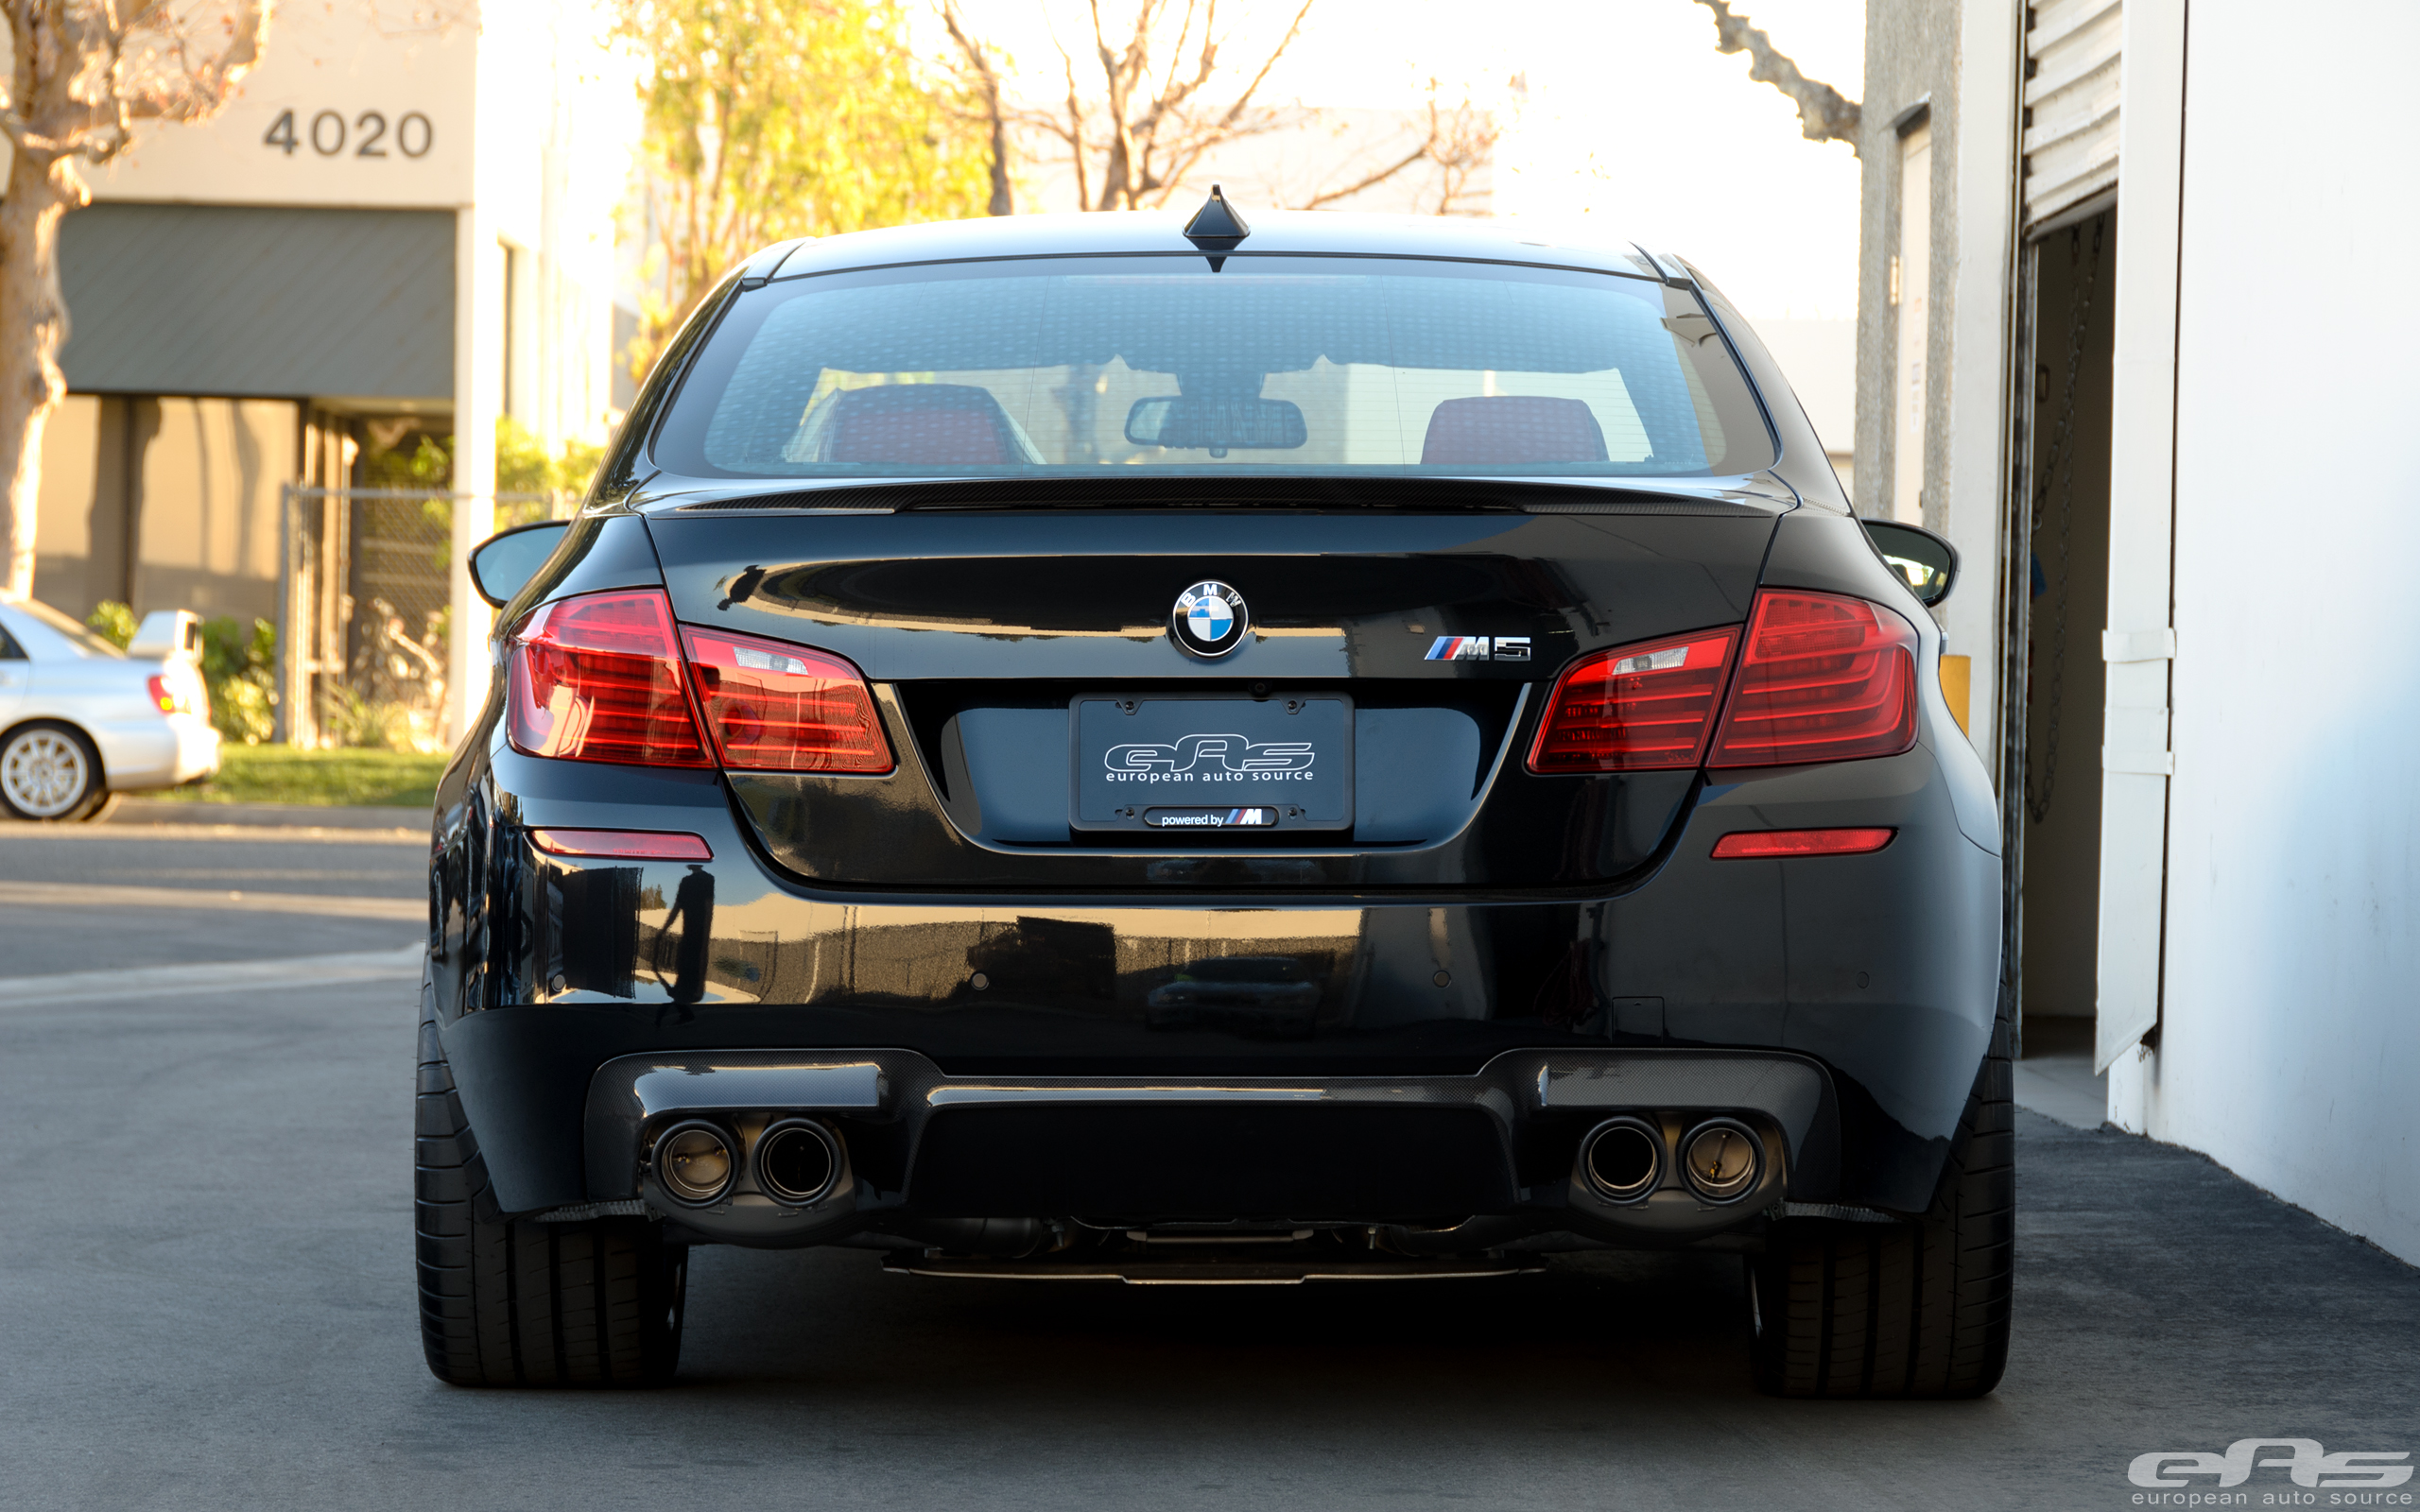 Eas Brand New M5 Gets The Eas Treatment